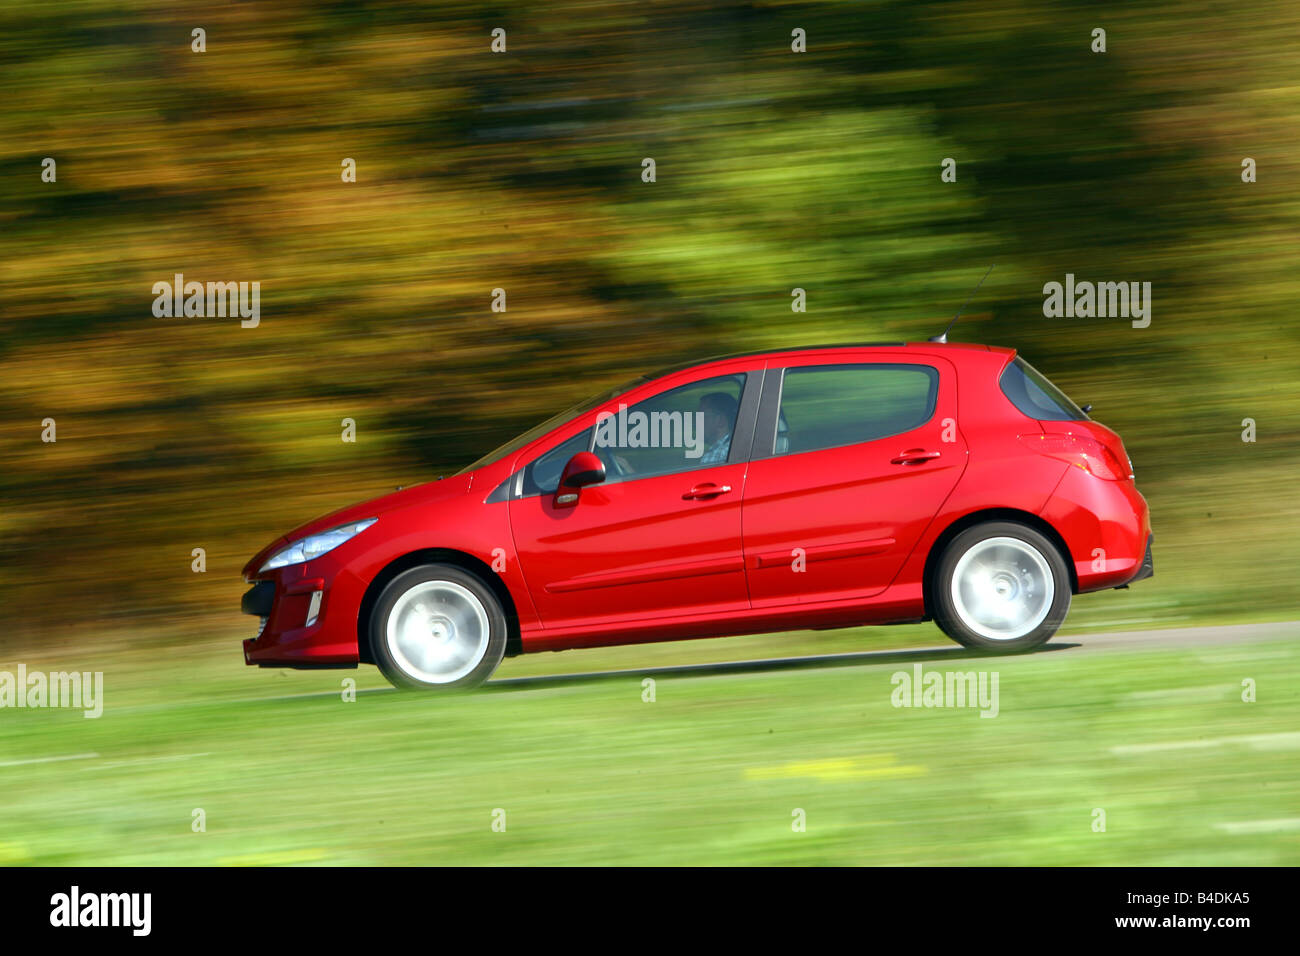 Peugeot 308 150 THP Sport Plus, model year 2007-, red, driving, side view, country road Stock Photo